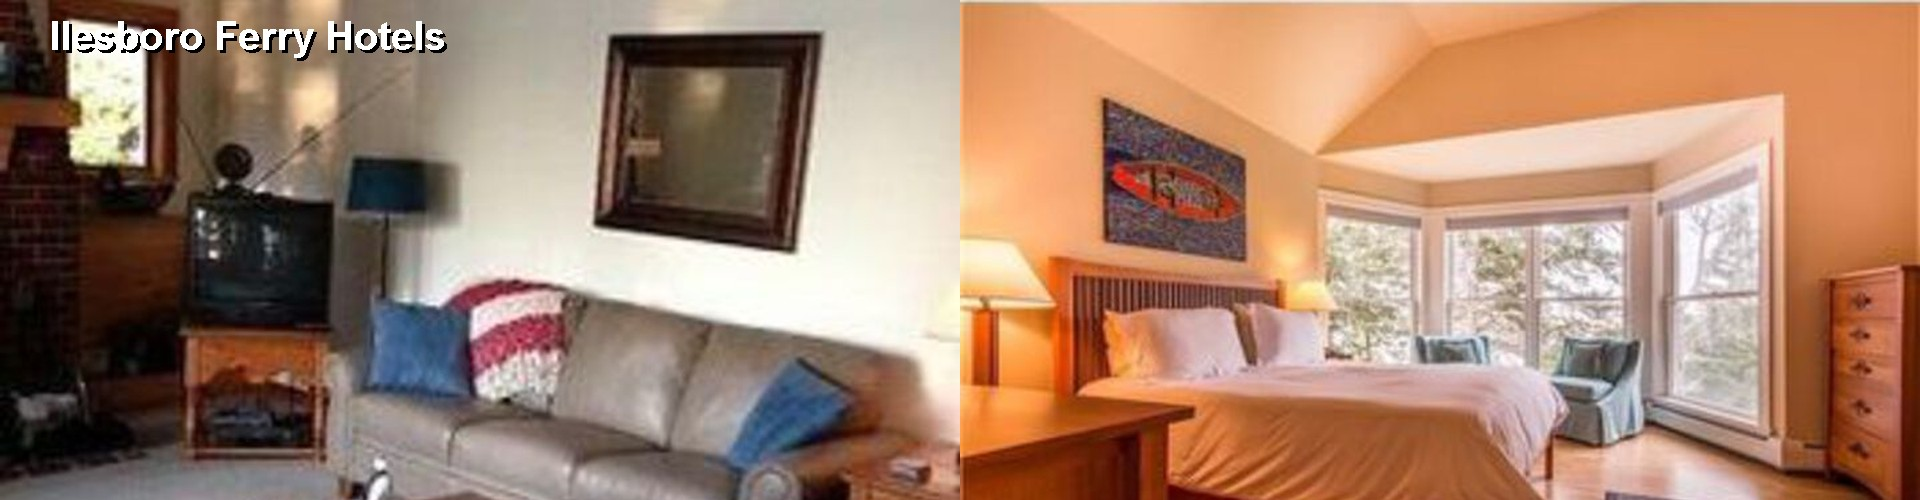 5 Best Hotels near Ilesboro Ferry